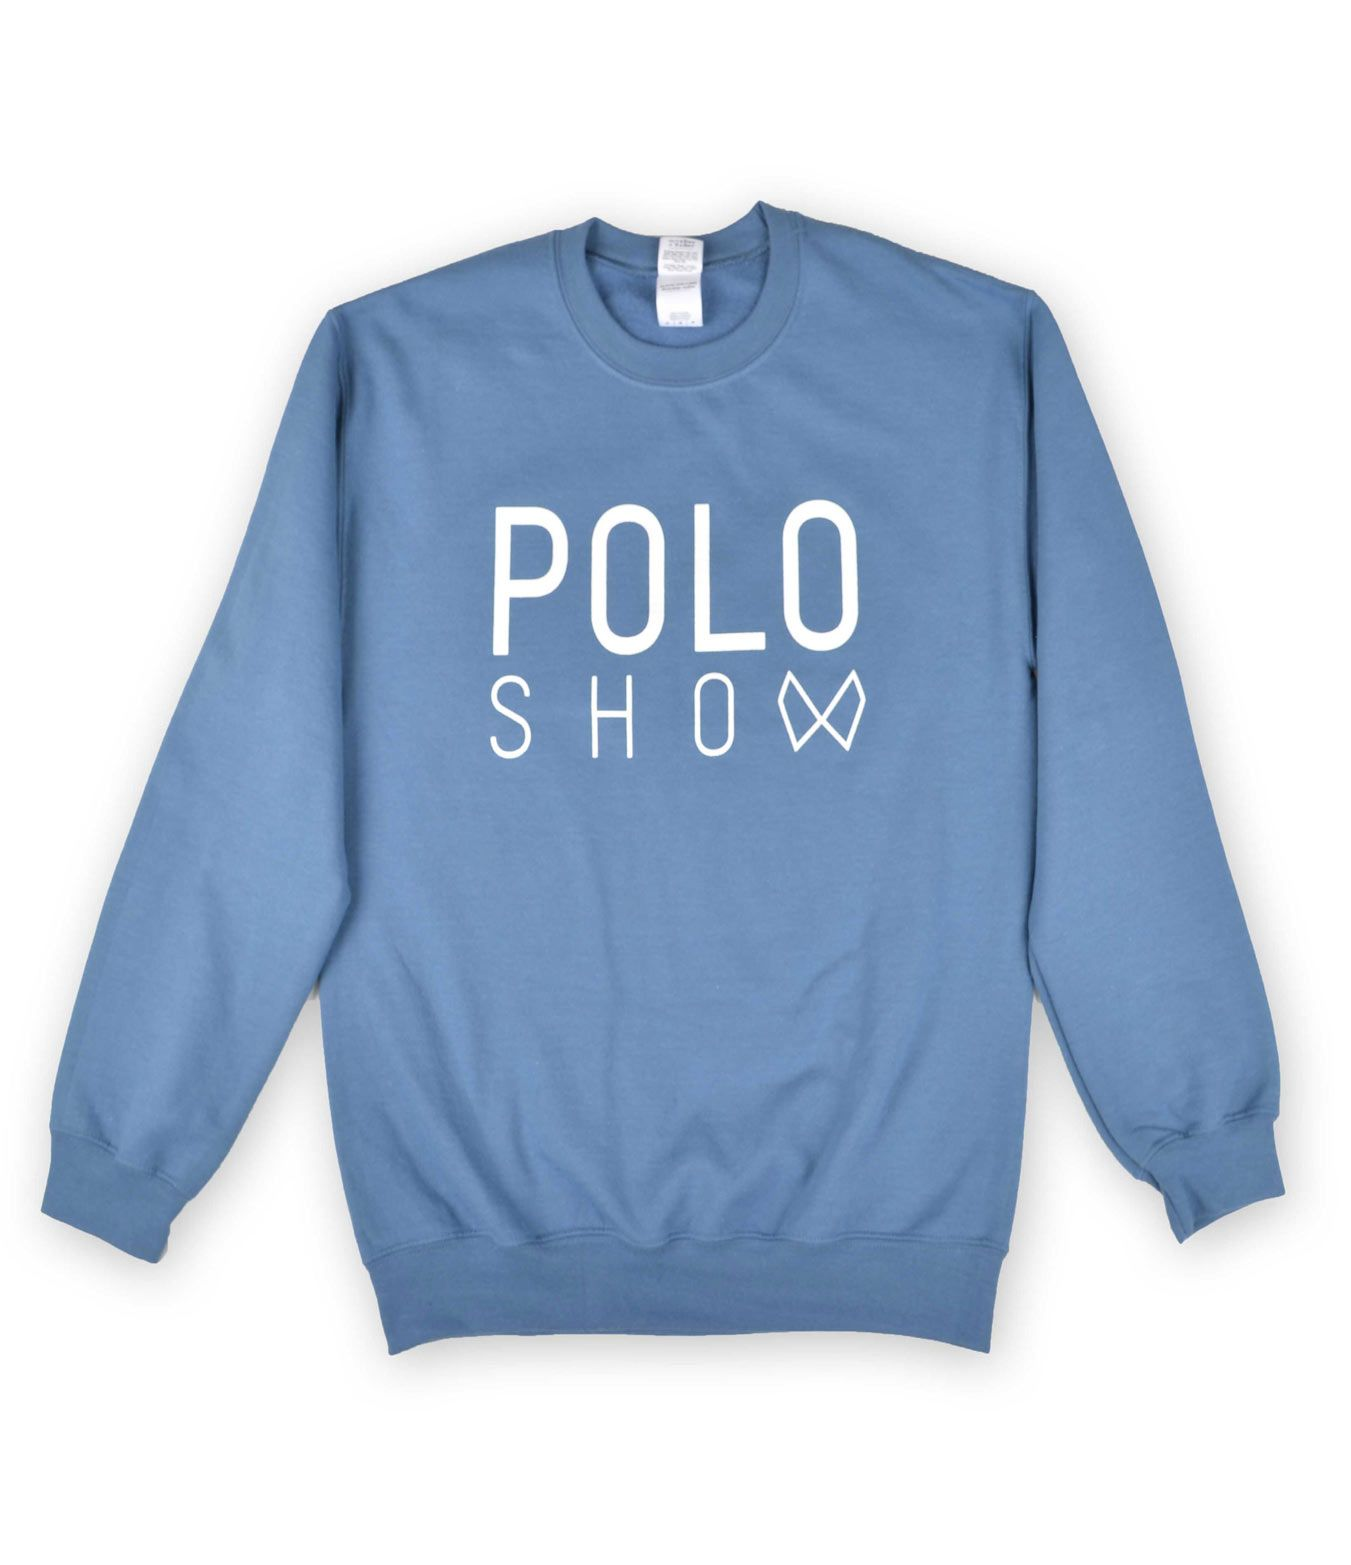 Poloshow sweater antiquesapphire 1